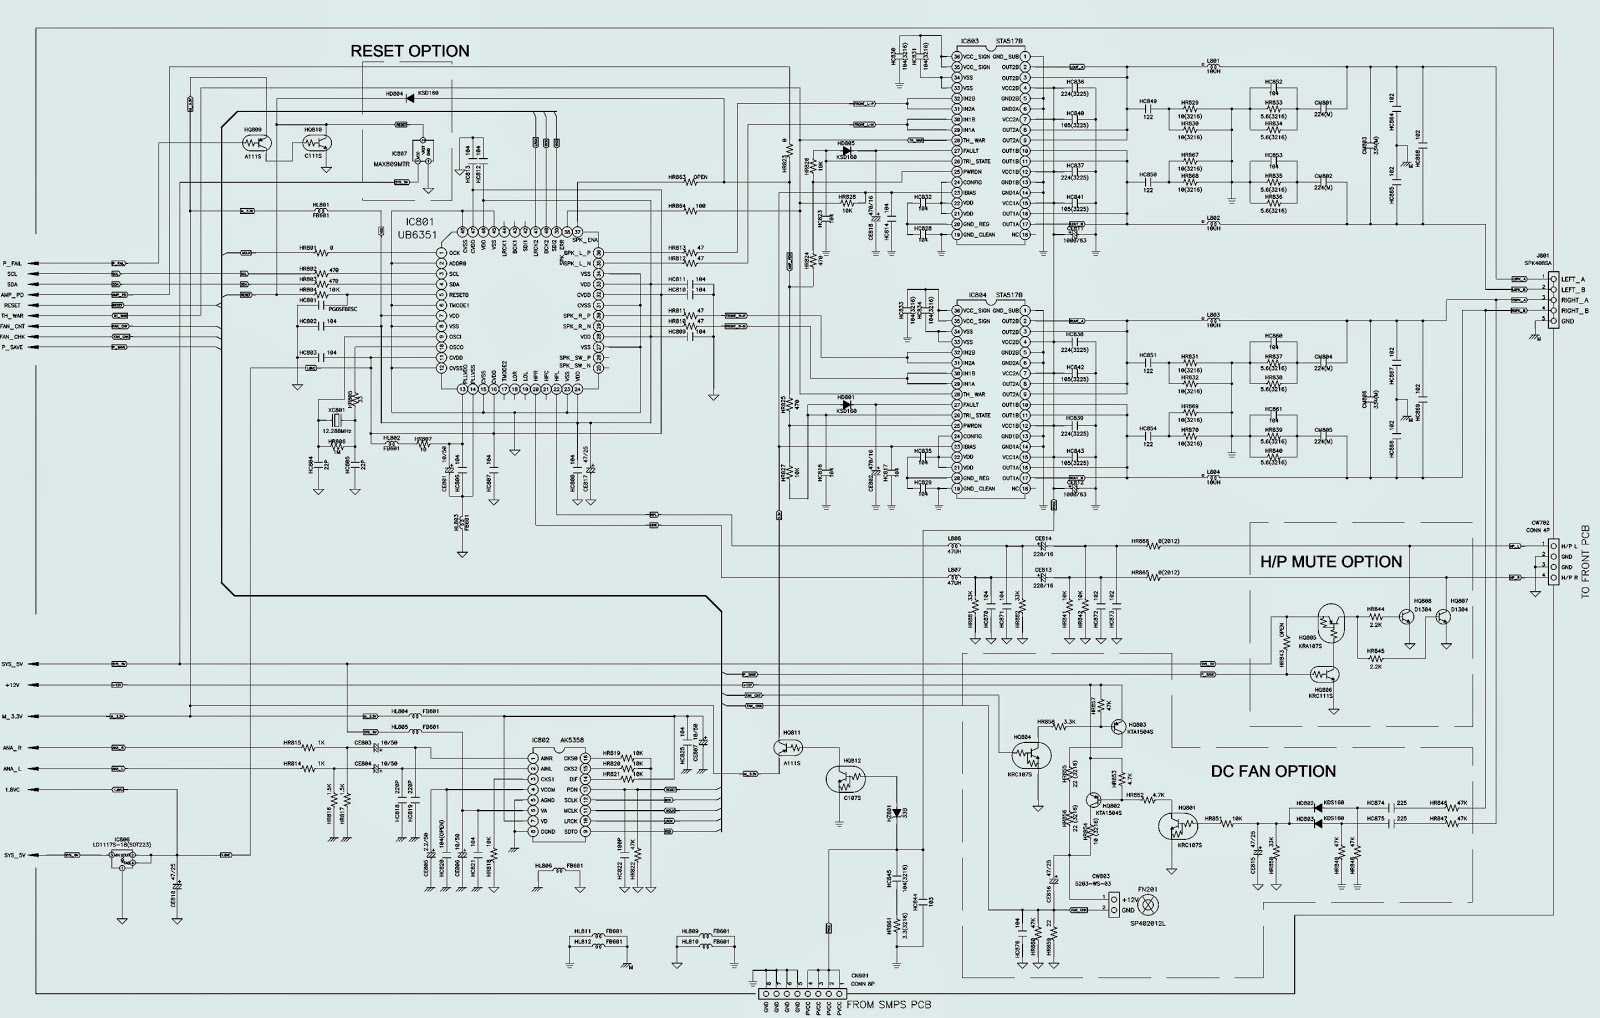 Schematic Diagram Toshiba Schematic Diagram Vizio